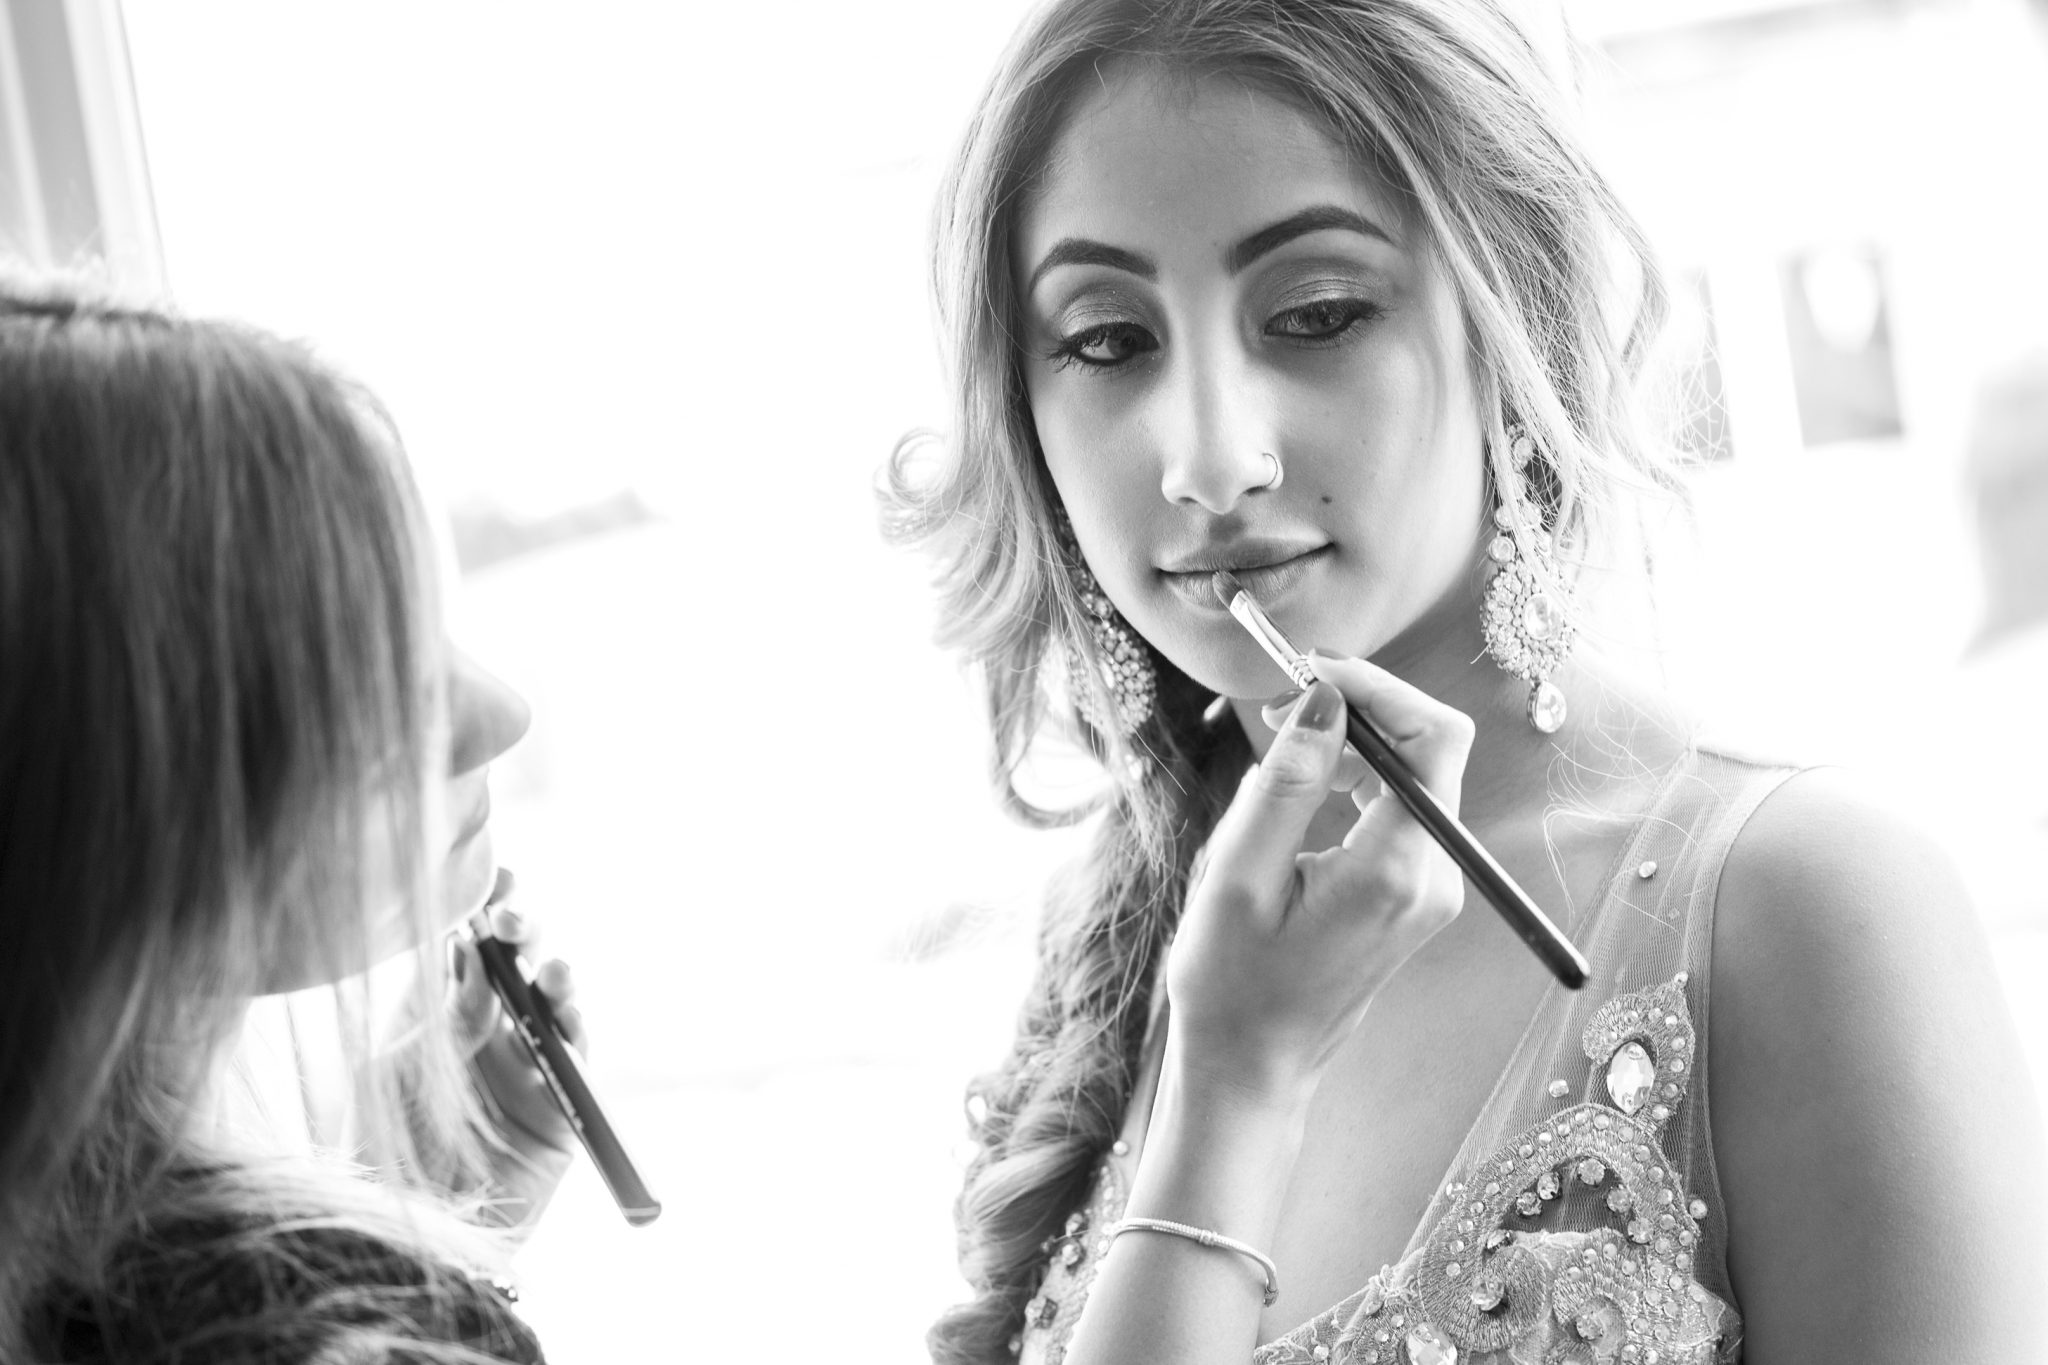 Make up artist Oxfordshire